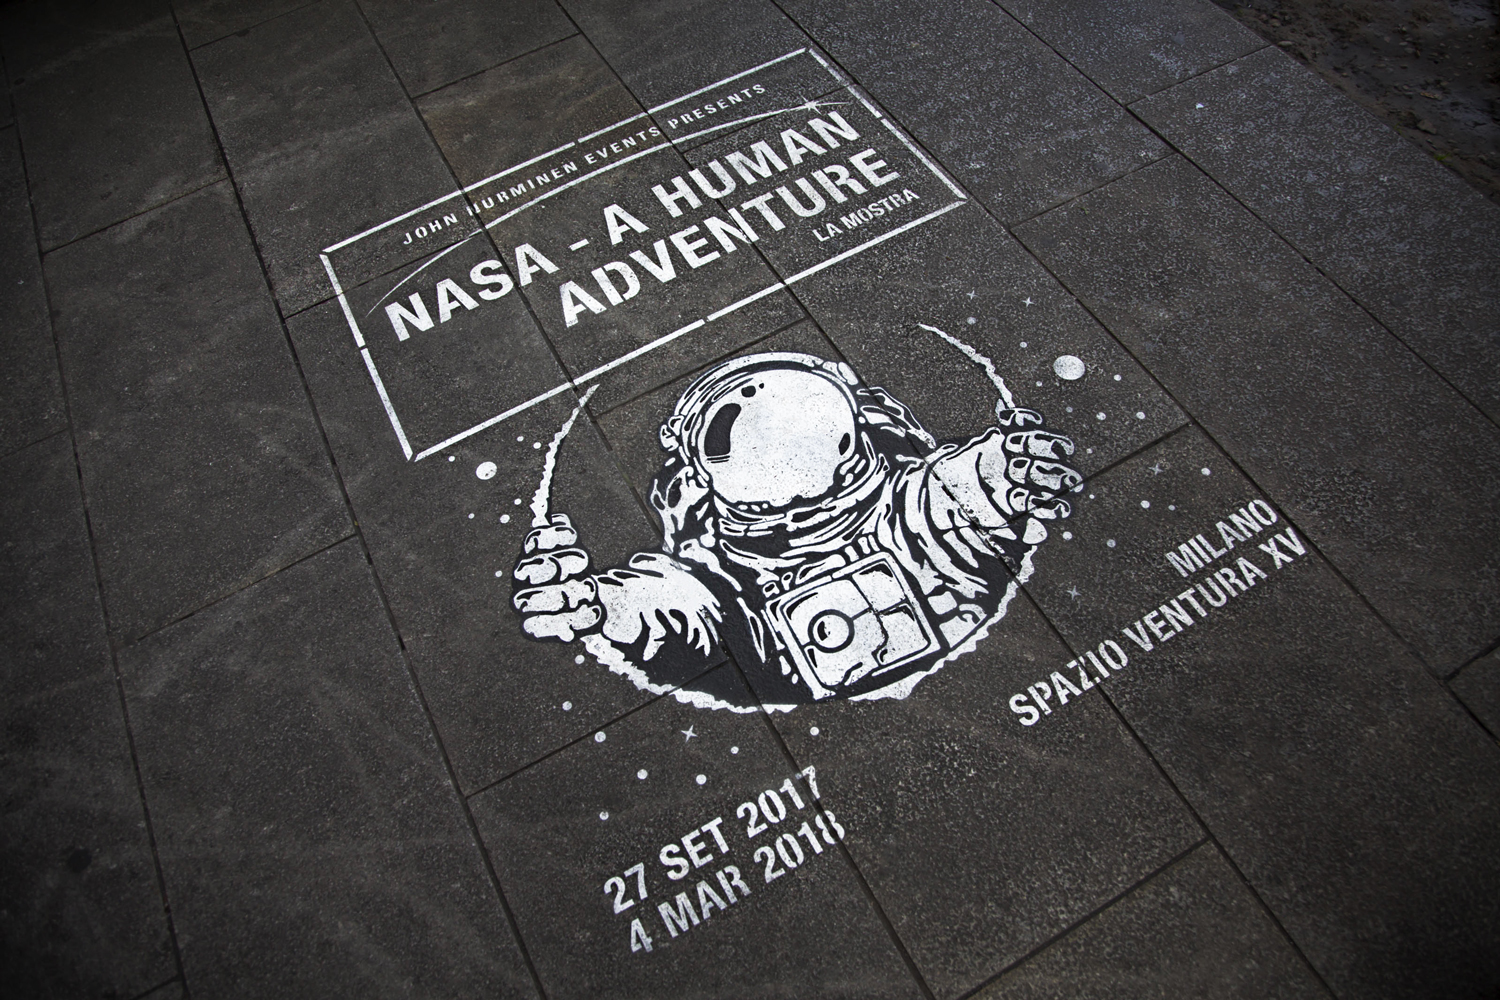 Jungle NASA graffiti 20